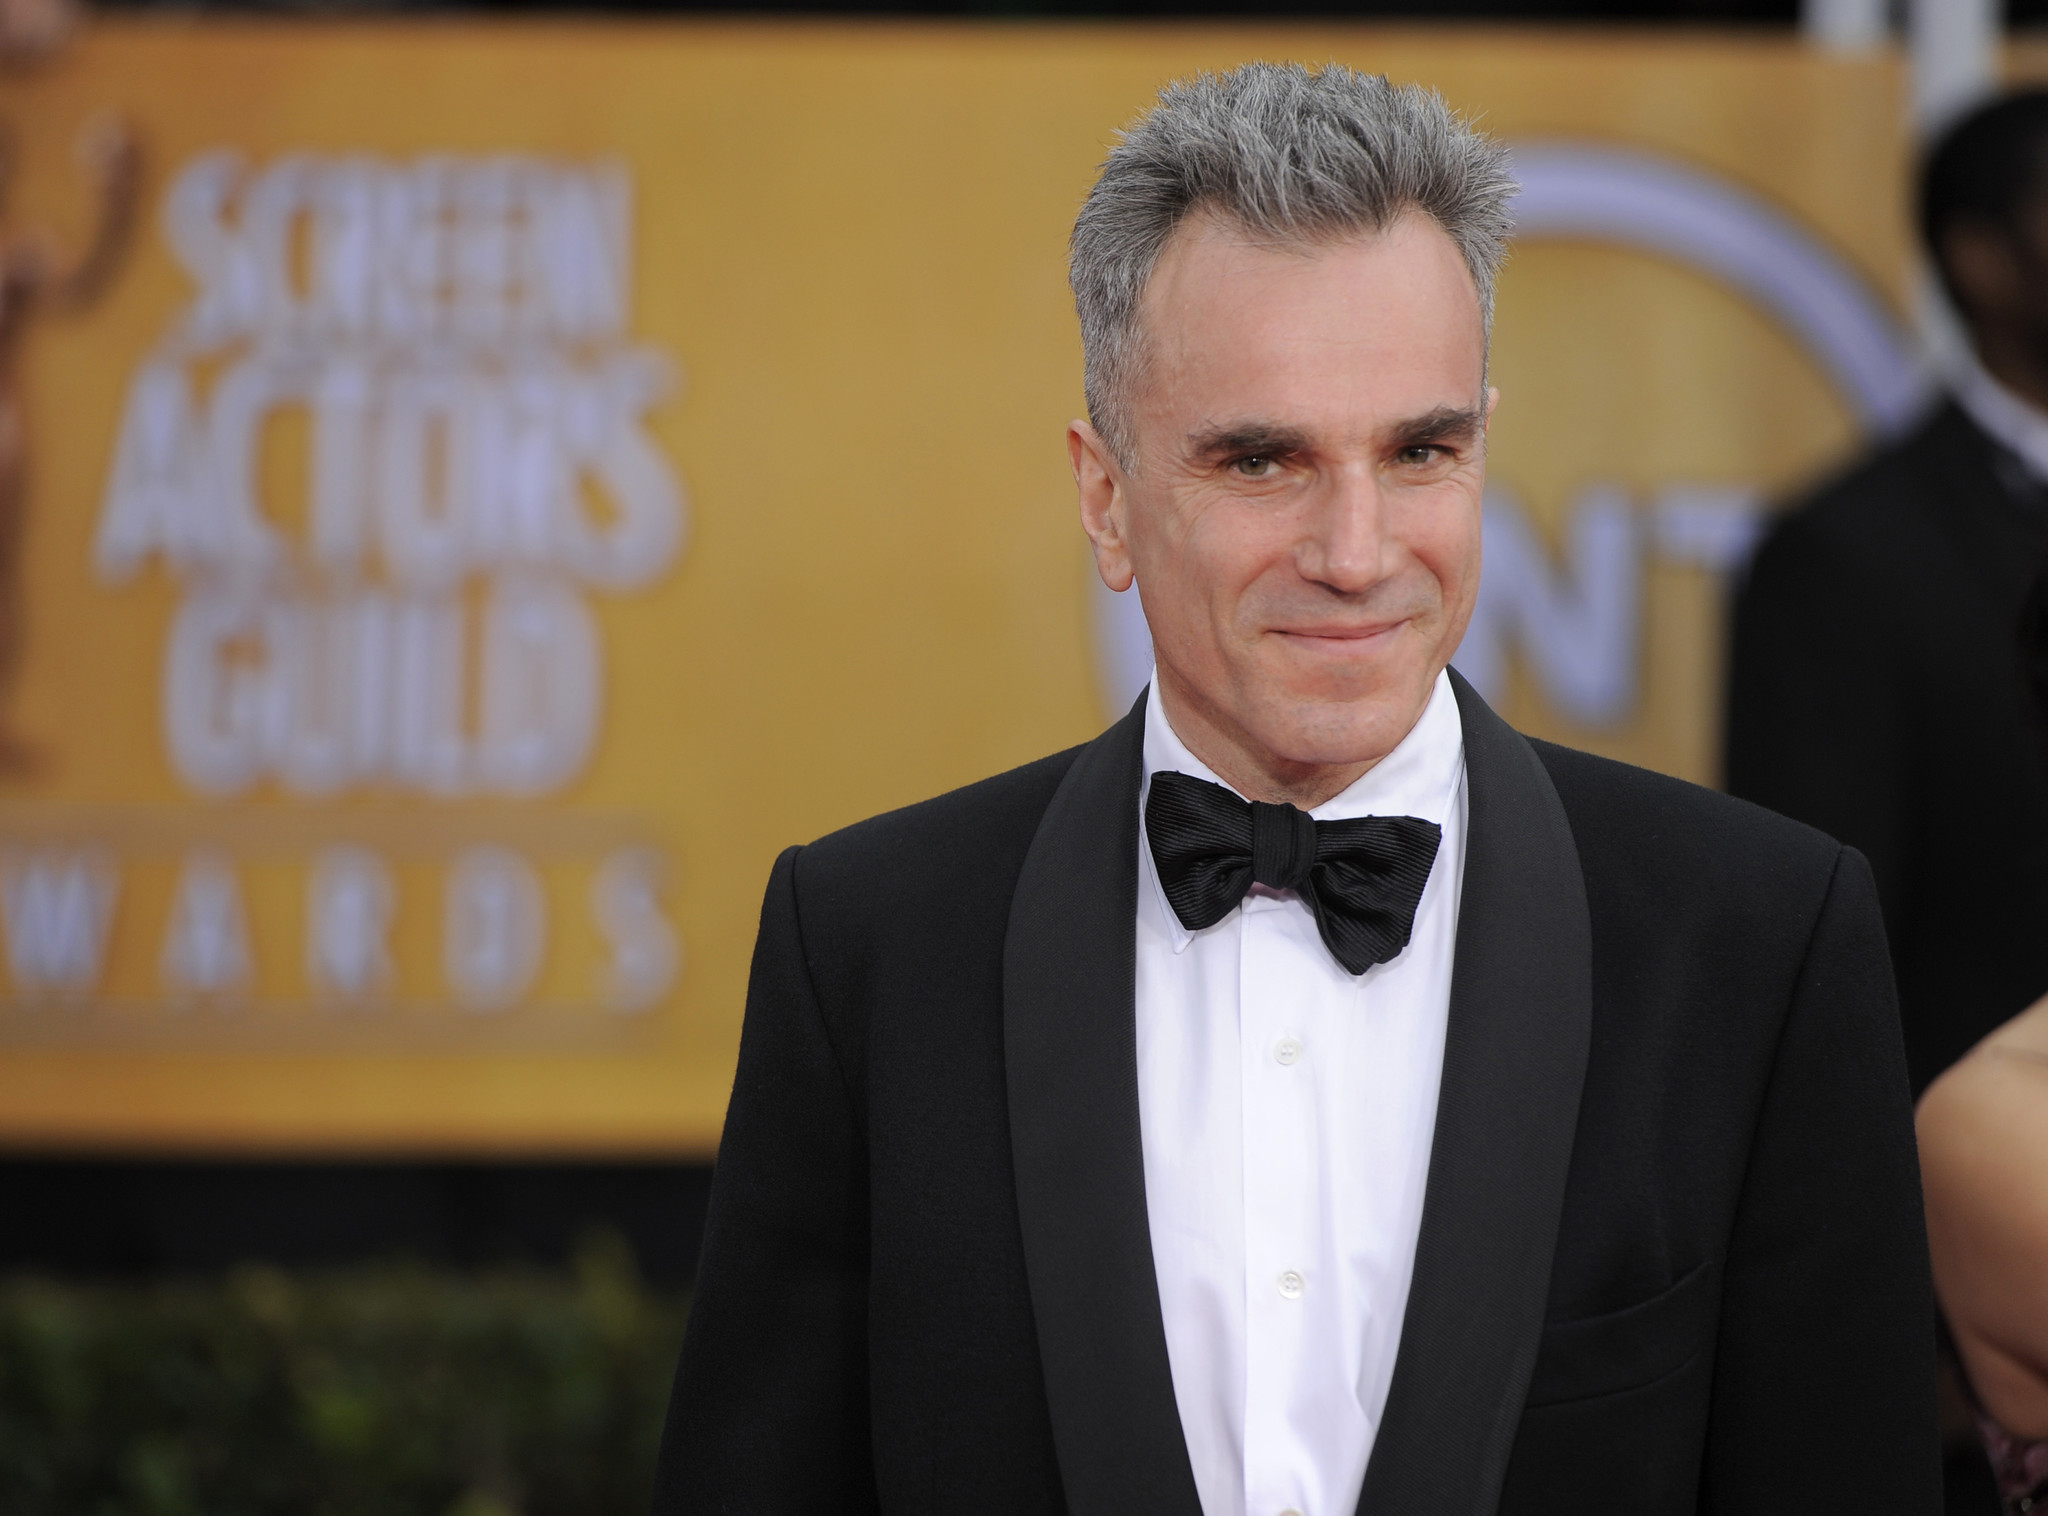 If Daniel Day-Lewis is really done acting, is it any surprise he did it on his own terms?